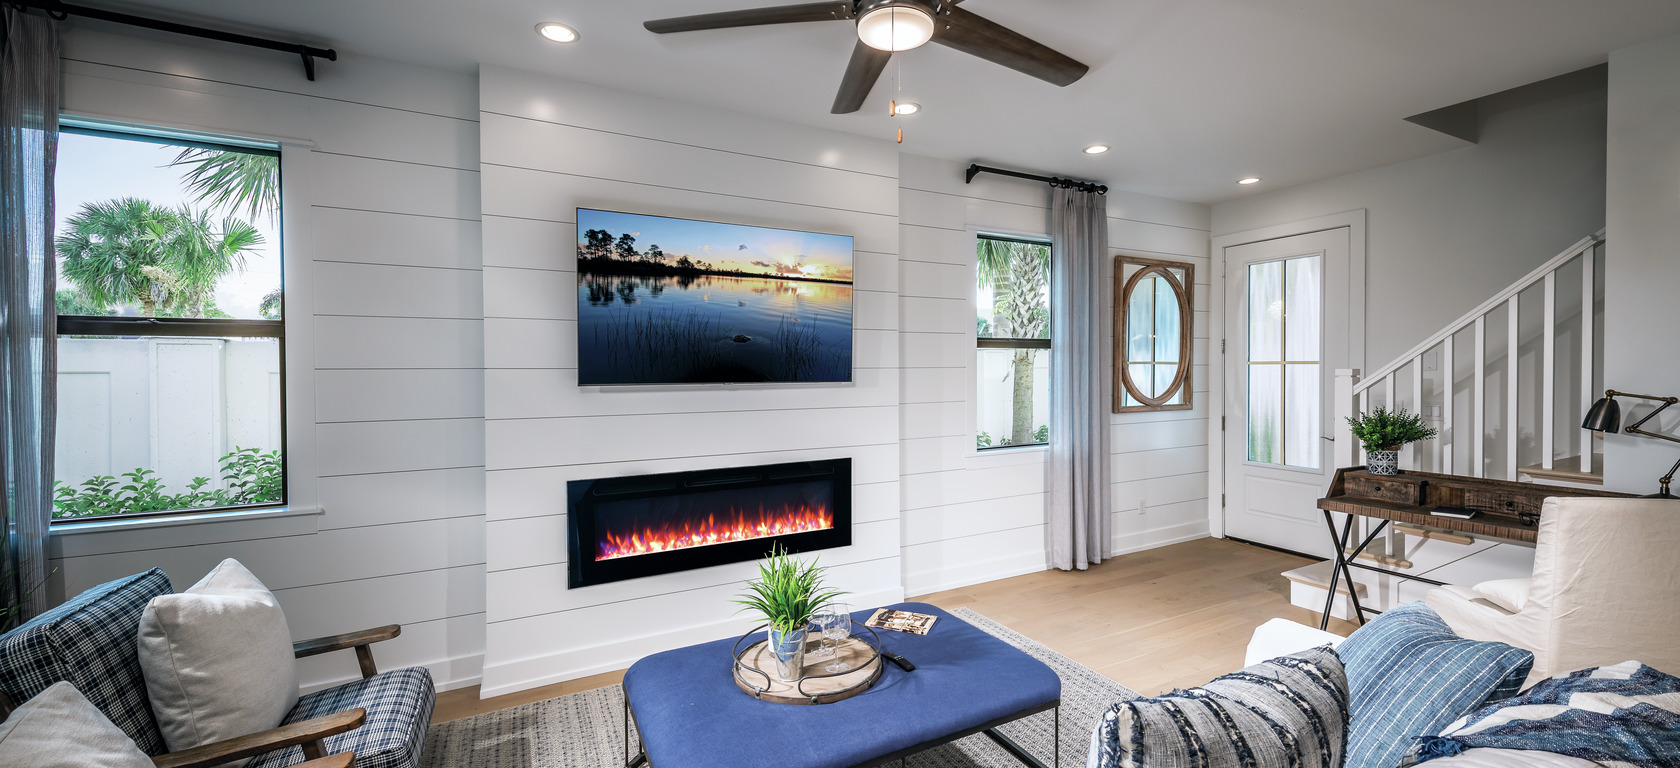 6 Benefits Of Ceiling Fans In Your Home